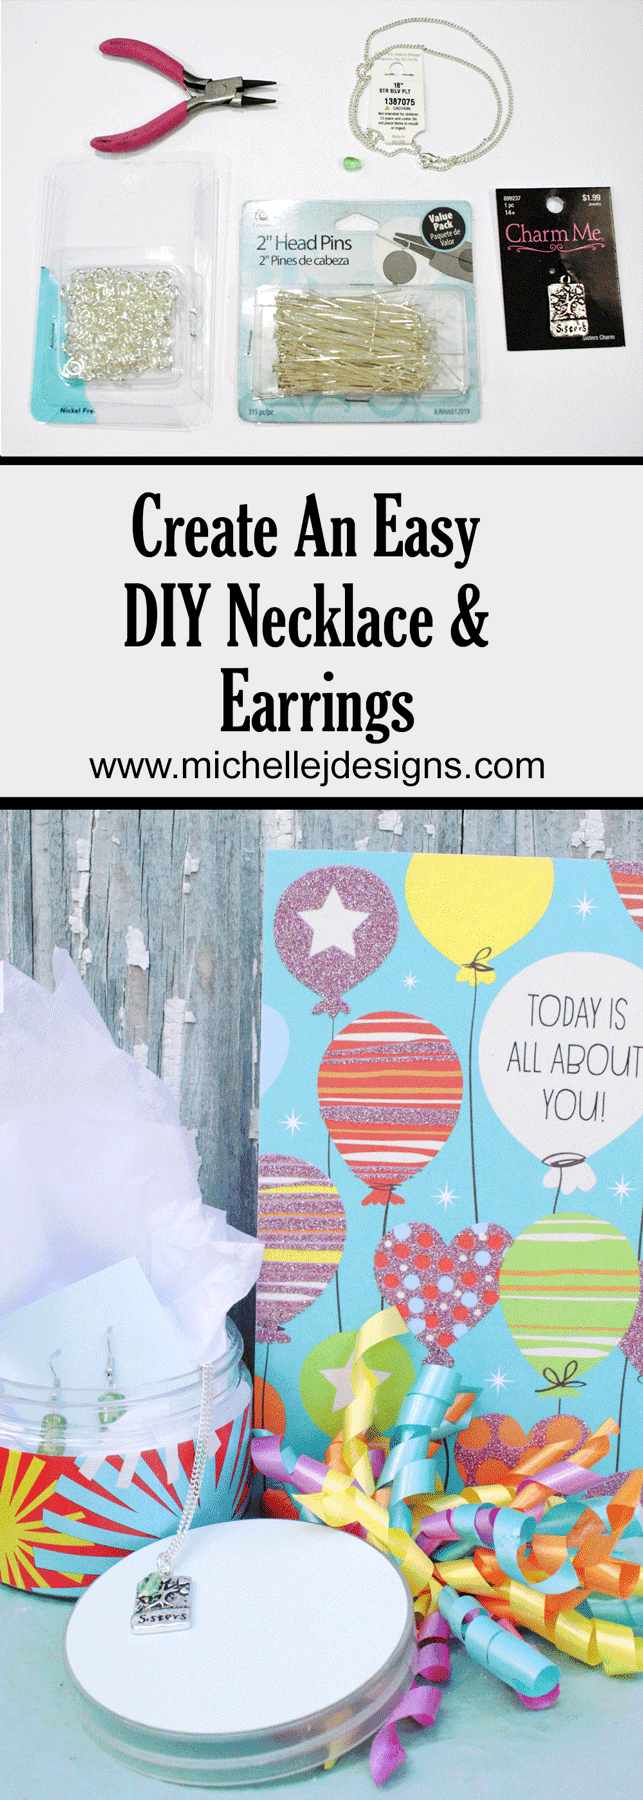 Create the perfect summer birthday gift. Create easy DIY necklace and earrings for someone special! - www.michellejdesigns.com